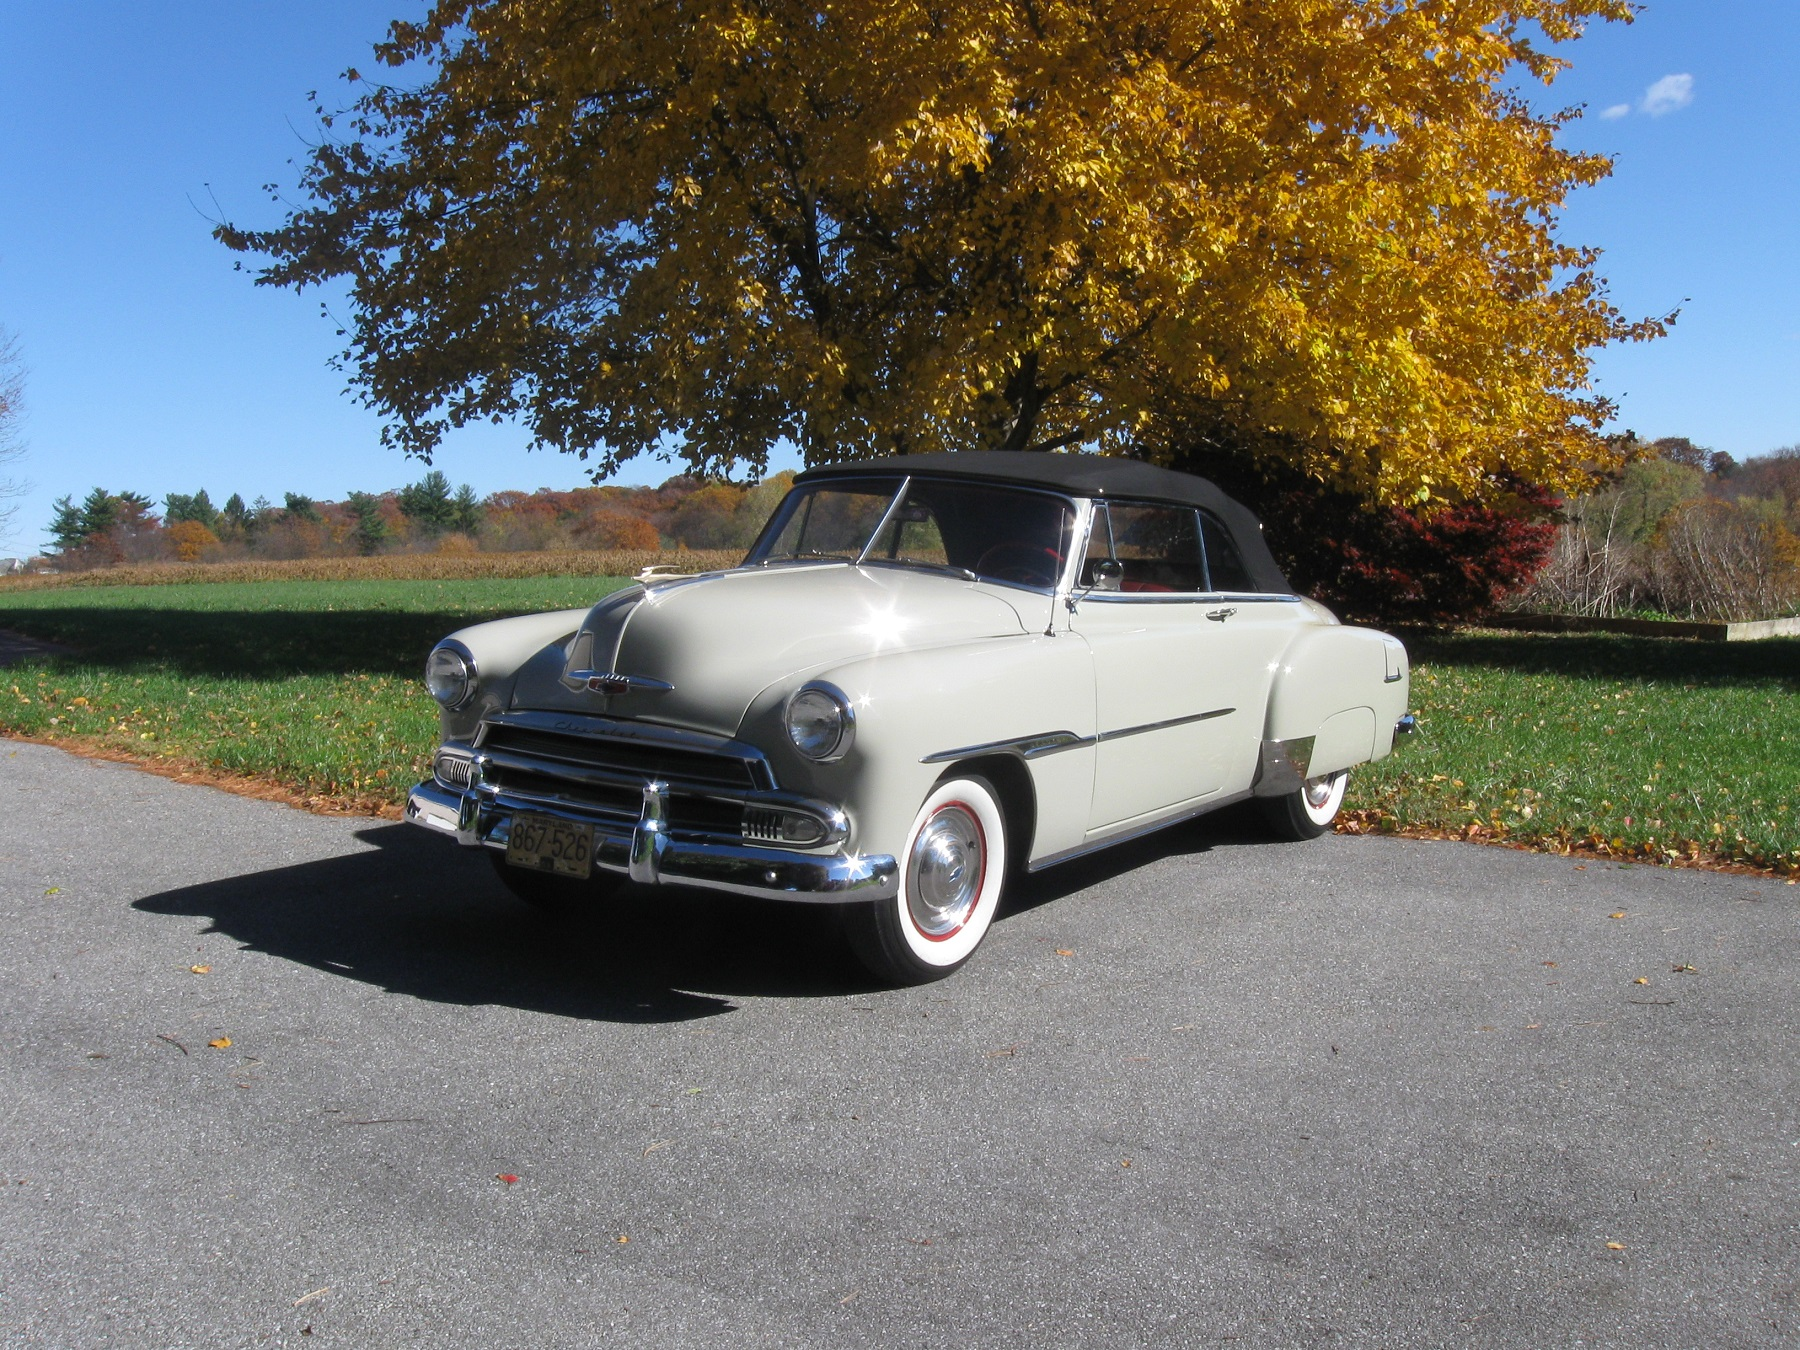 All In The Family 1951 Chevrolet Classic Classics Groovecar Styleline Deluxe Service Station Owner Had Just Purchased Convertible At A Dealership Baltimore He Paid 225815 For Car Minus 1208 That